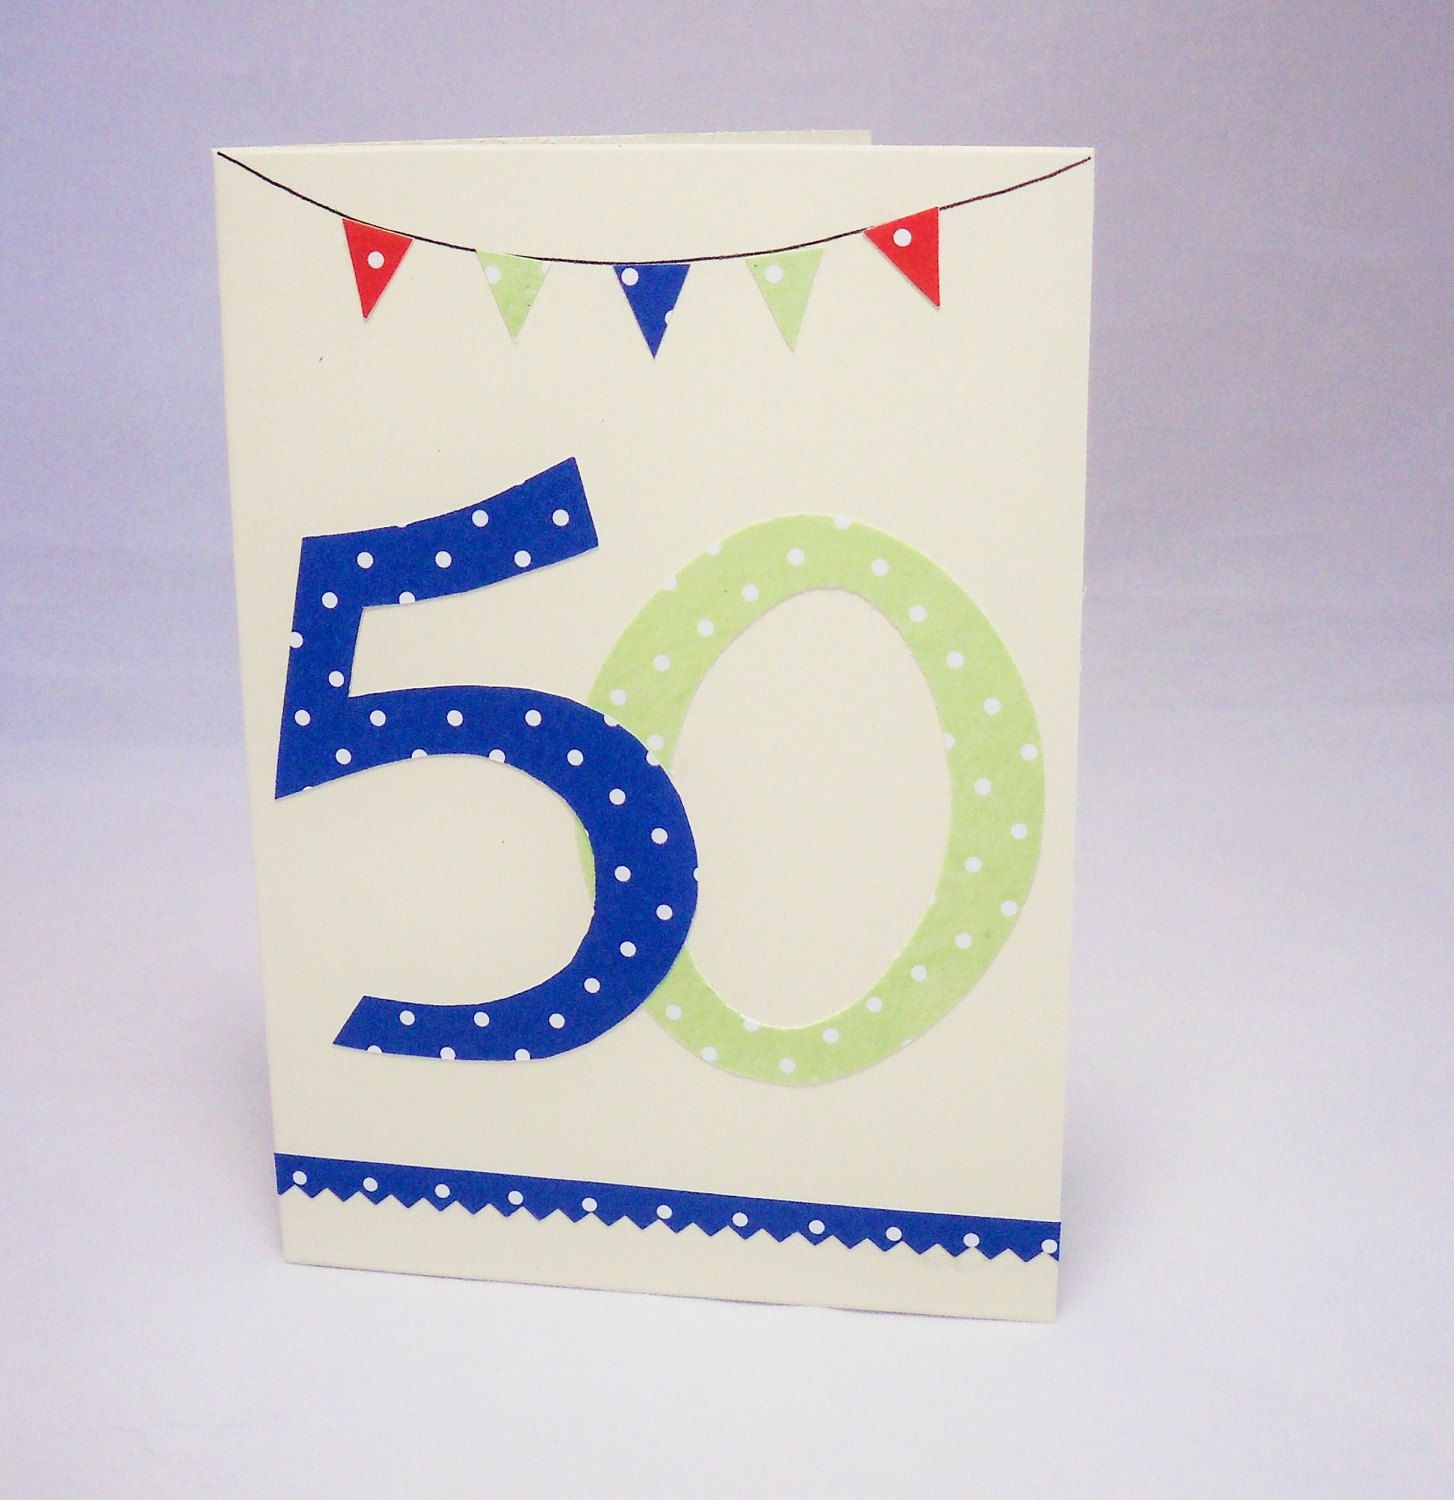 50th birthday 50 card special birthday 50th birthday male 50th 50th birthday 50 card special birthday 50th birthday male 50th number card bunting card 50 card milestone birthday 50th male gift bookmarktalkfo Image collections